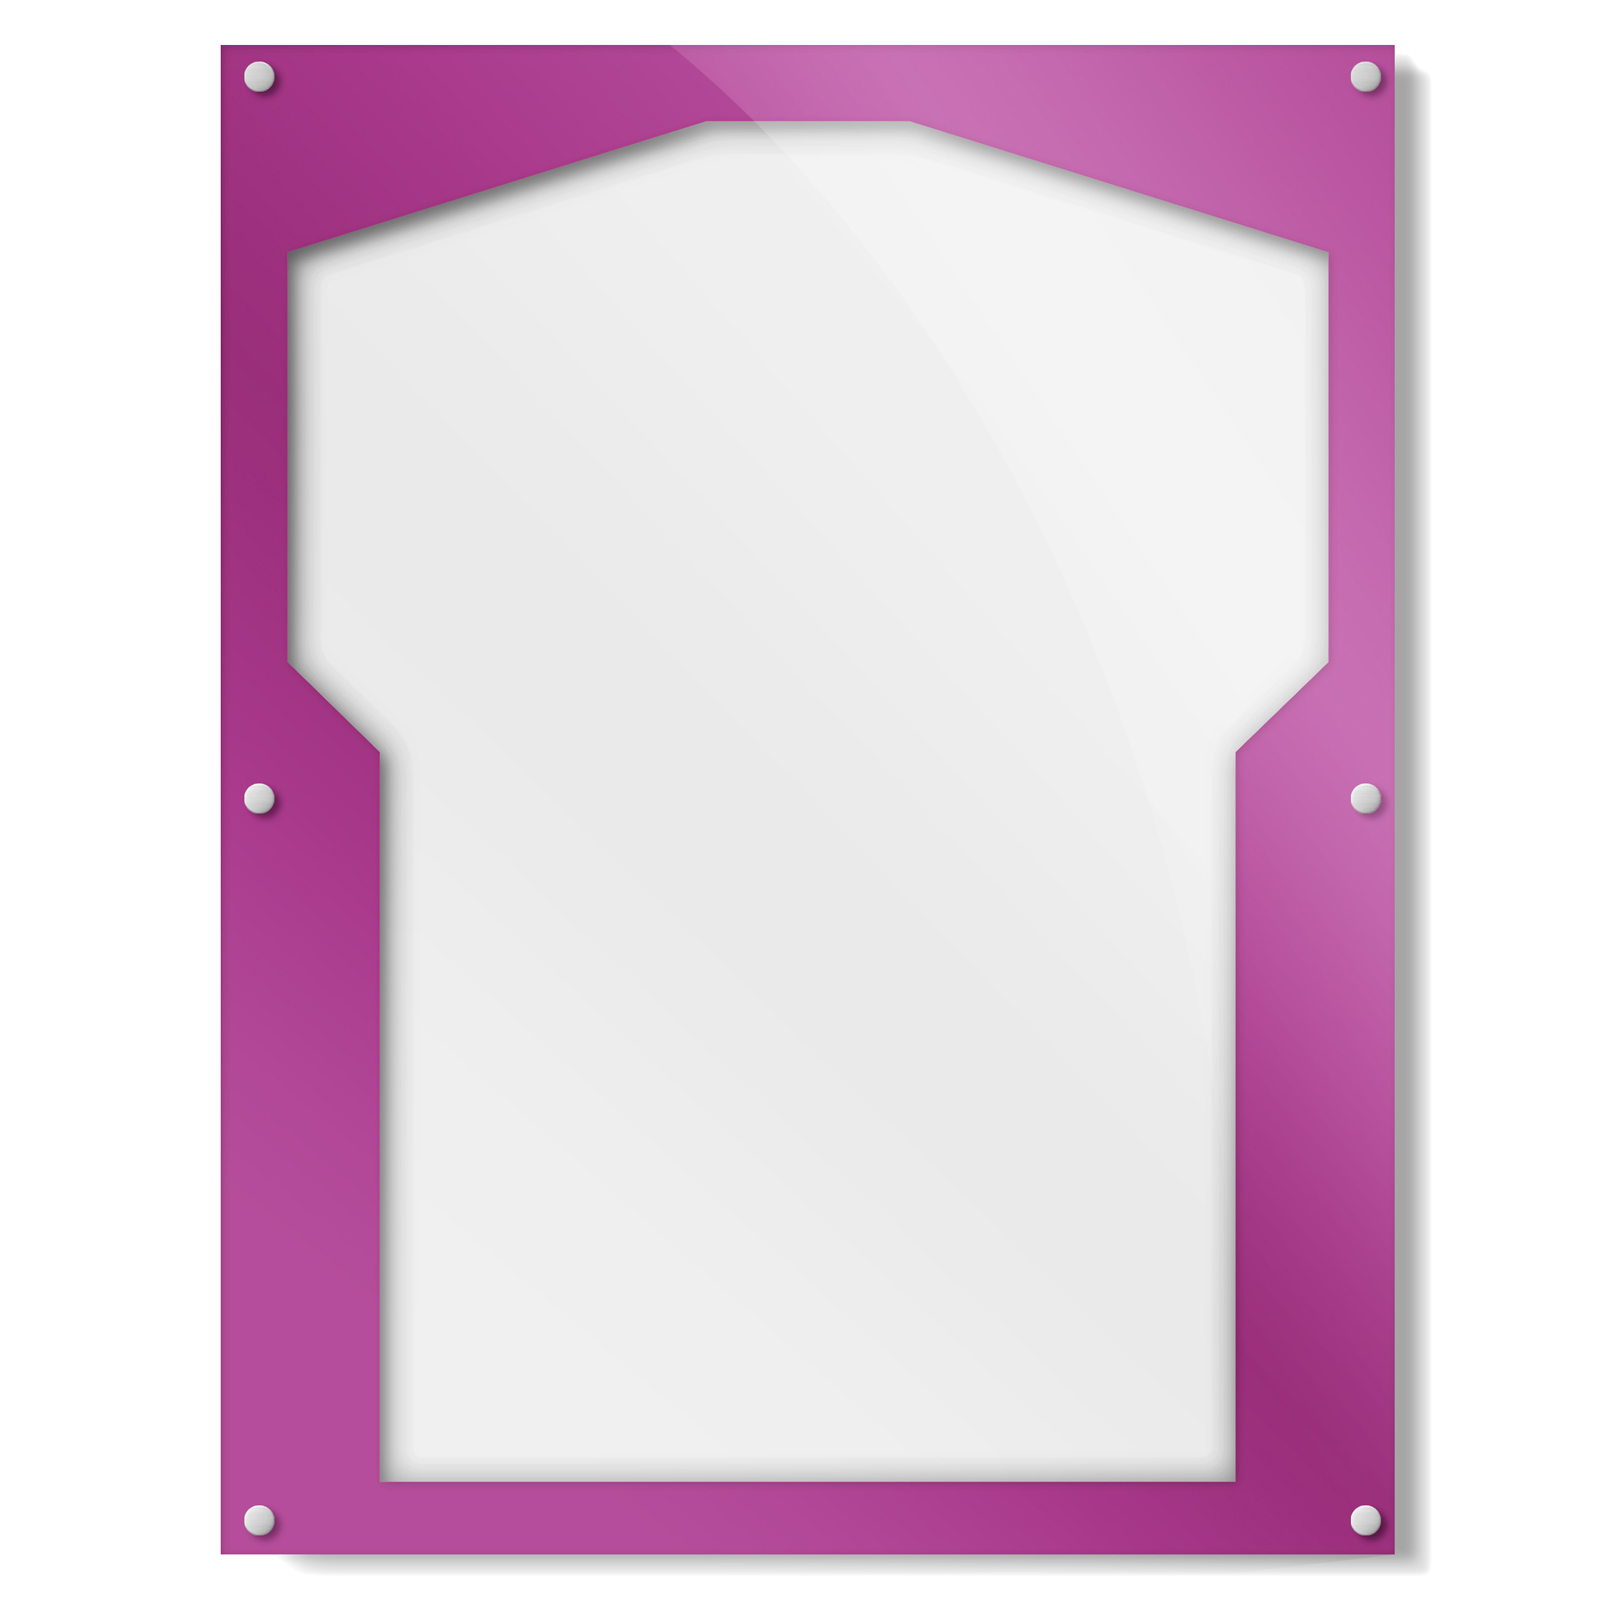 Purple Shirt Frame With Team Variations | Get Acrylic Photo Frames